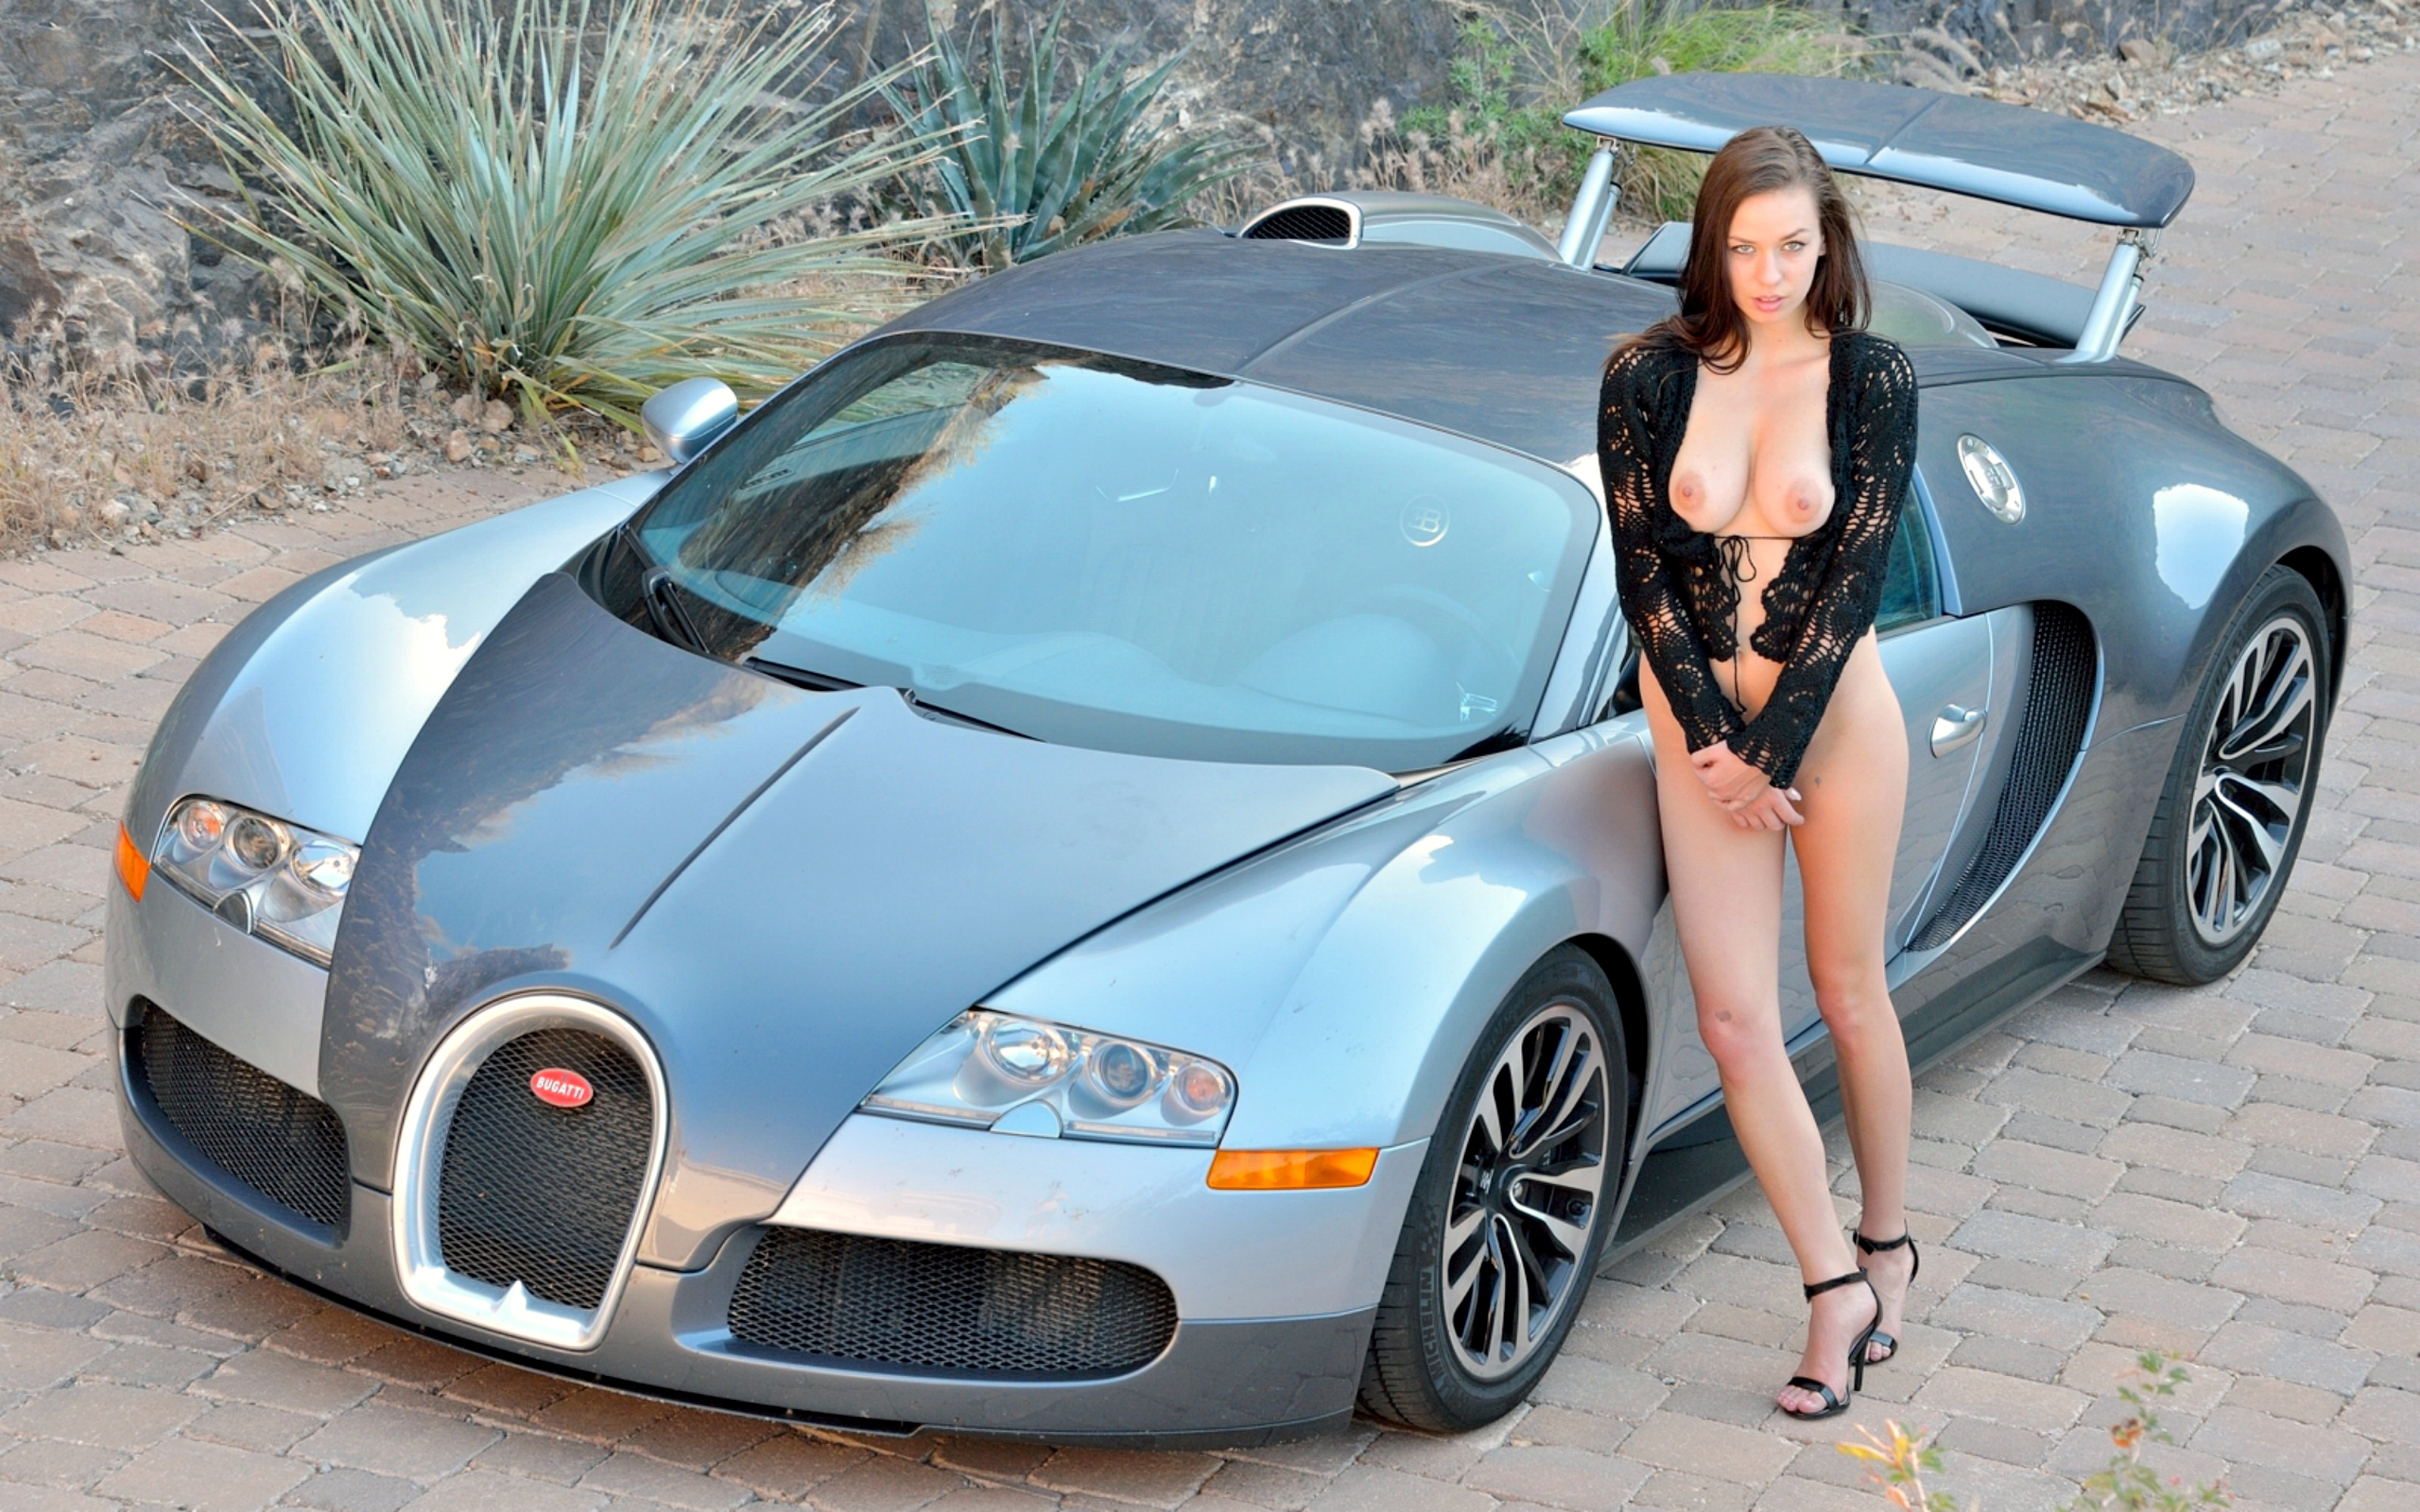 Naked girls and their cars, big tit amateur pics